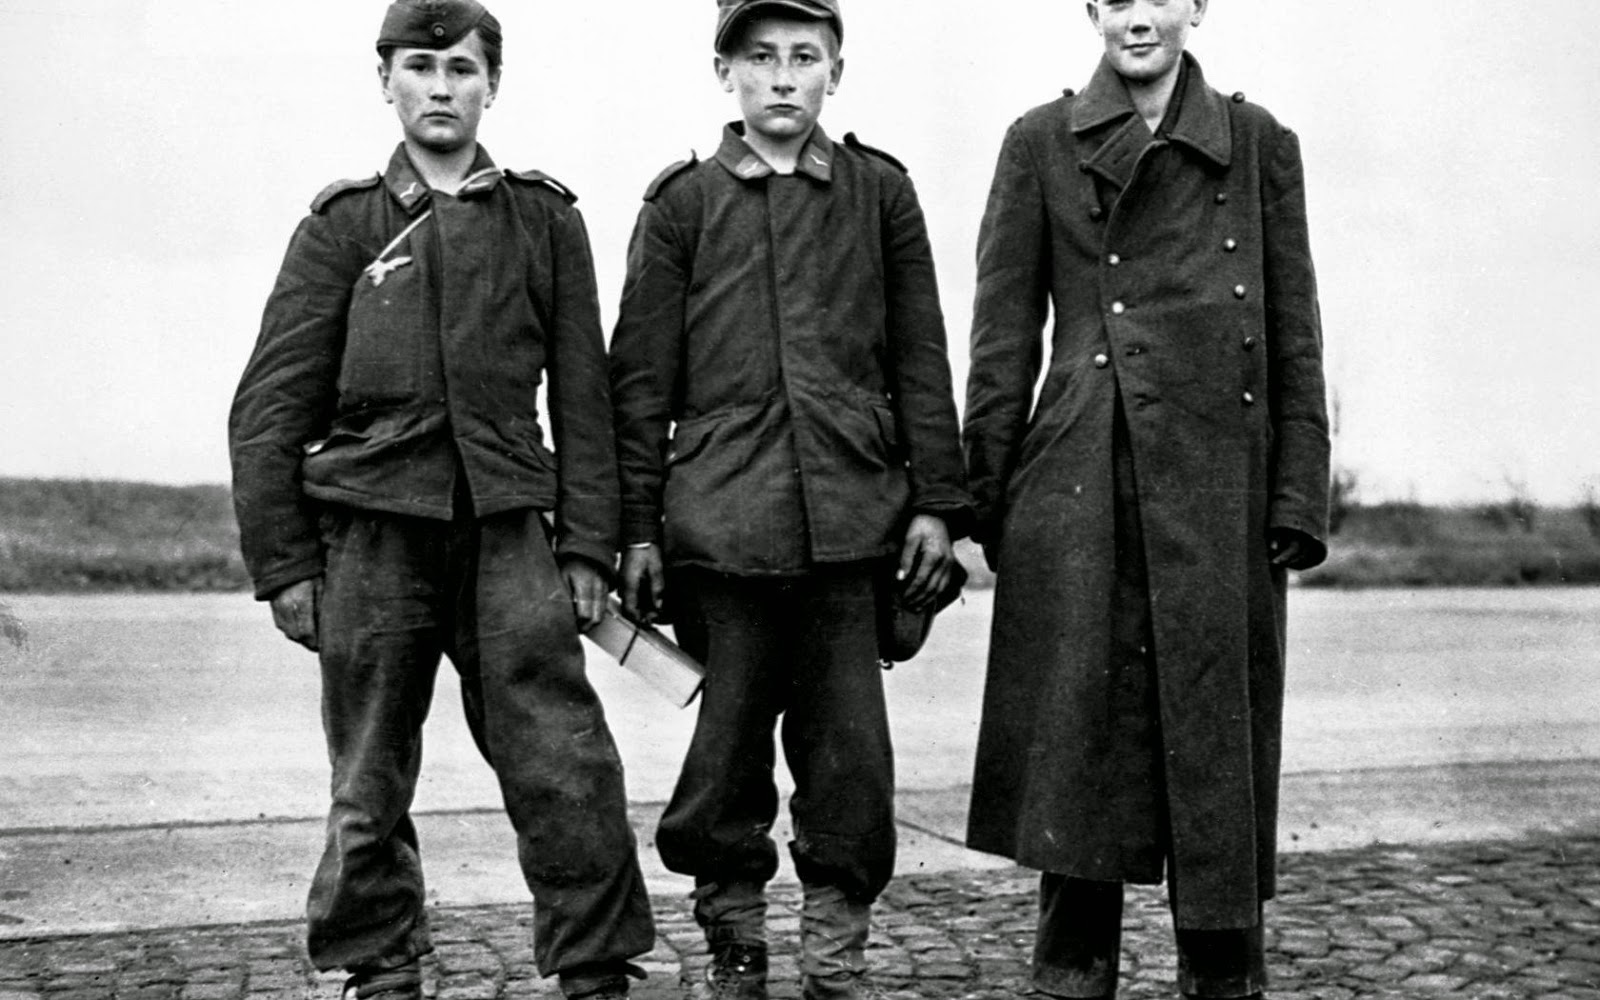 Boy soldiers nazi germany